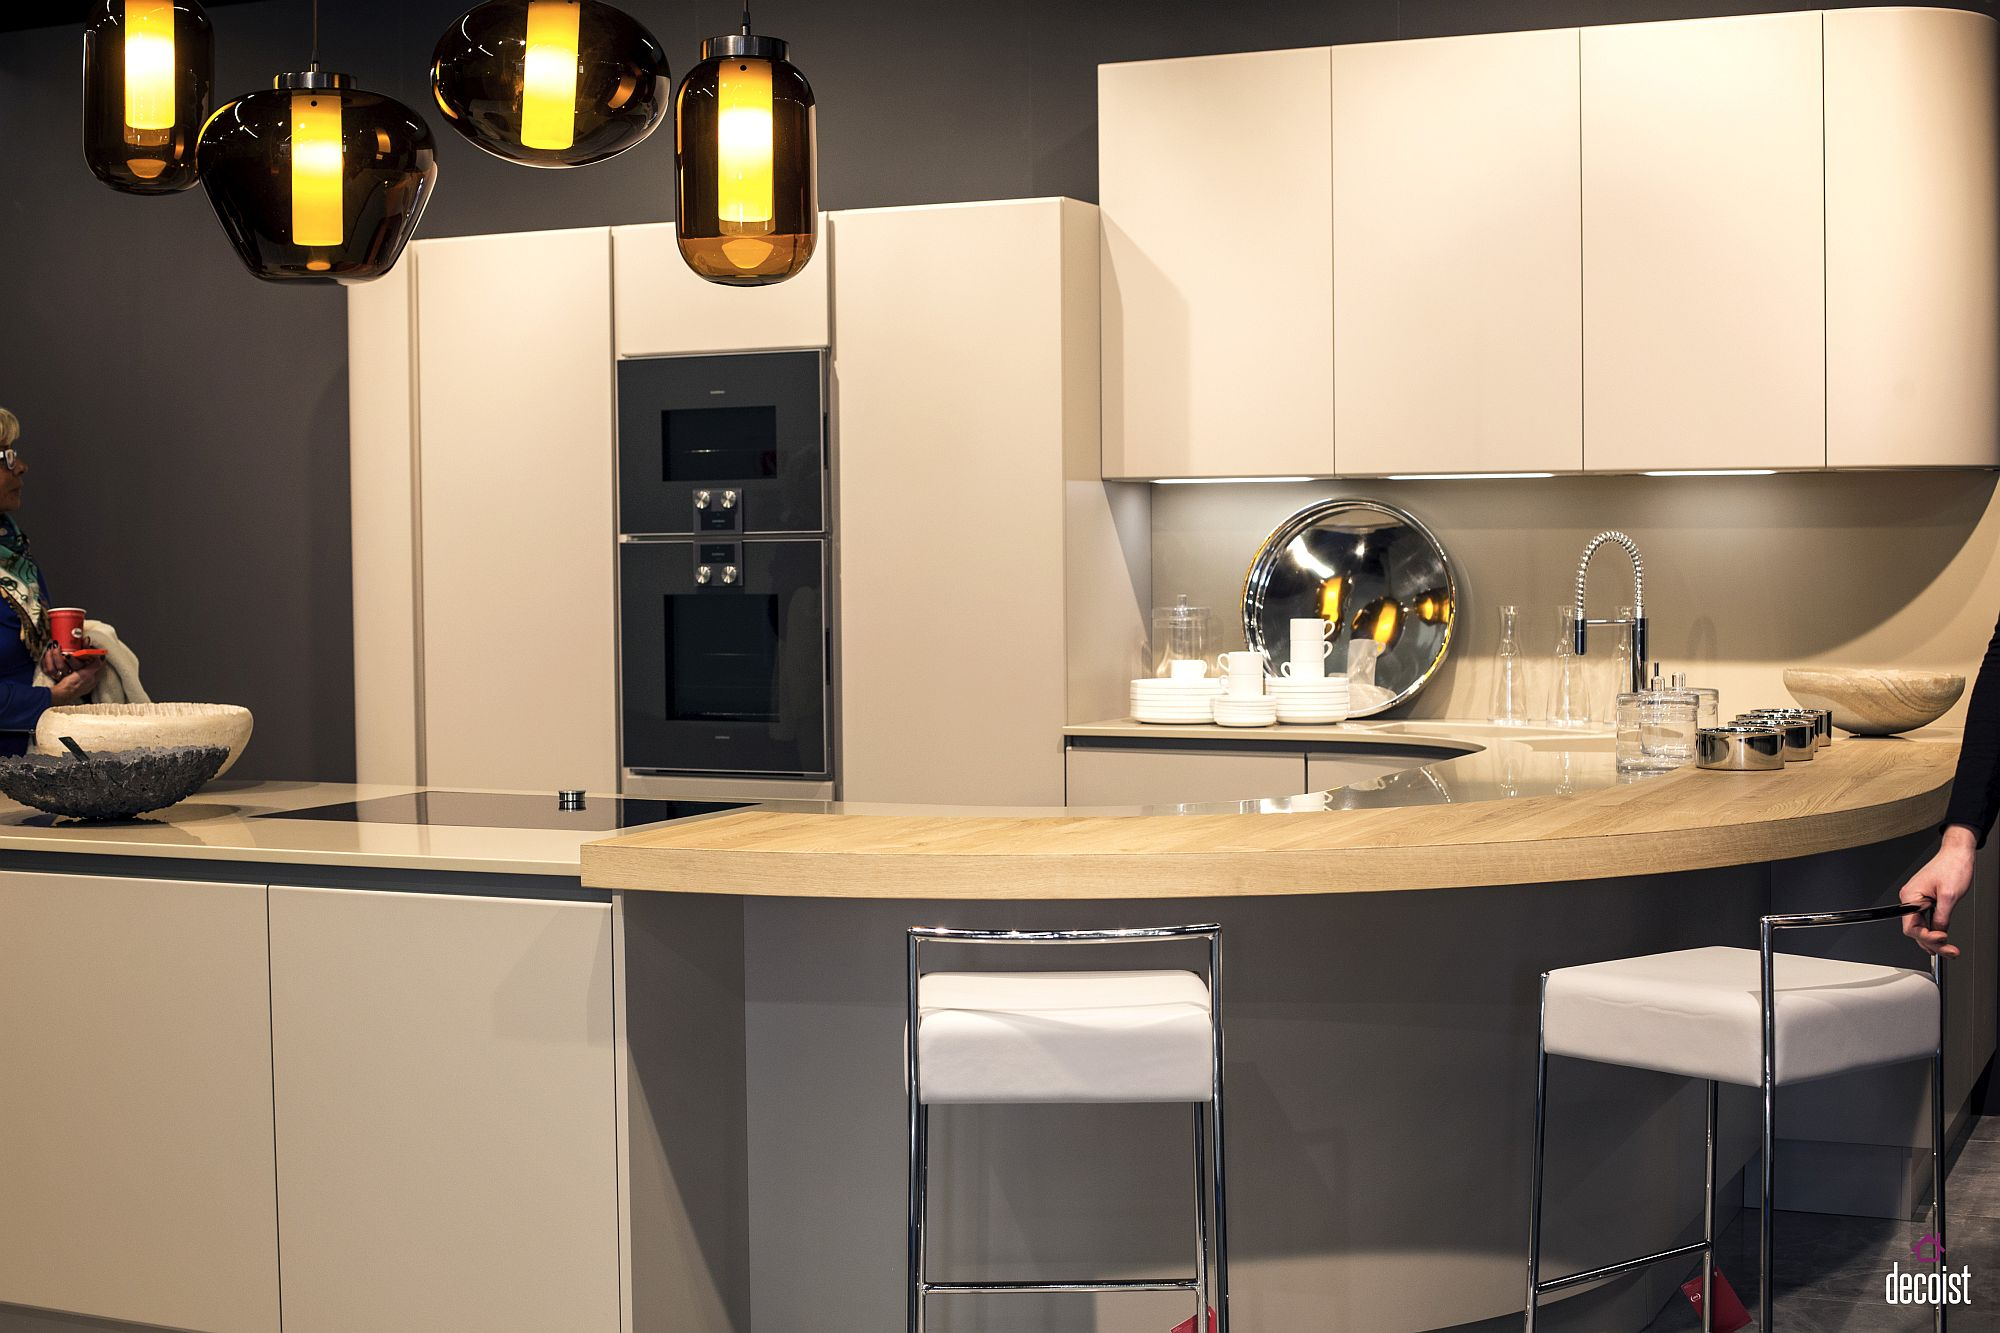 Creative kitchen design from Pedini with smart, curved breakfast bar